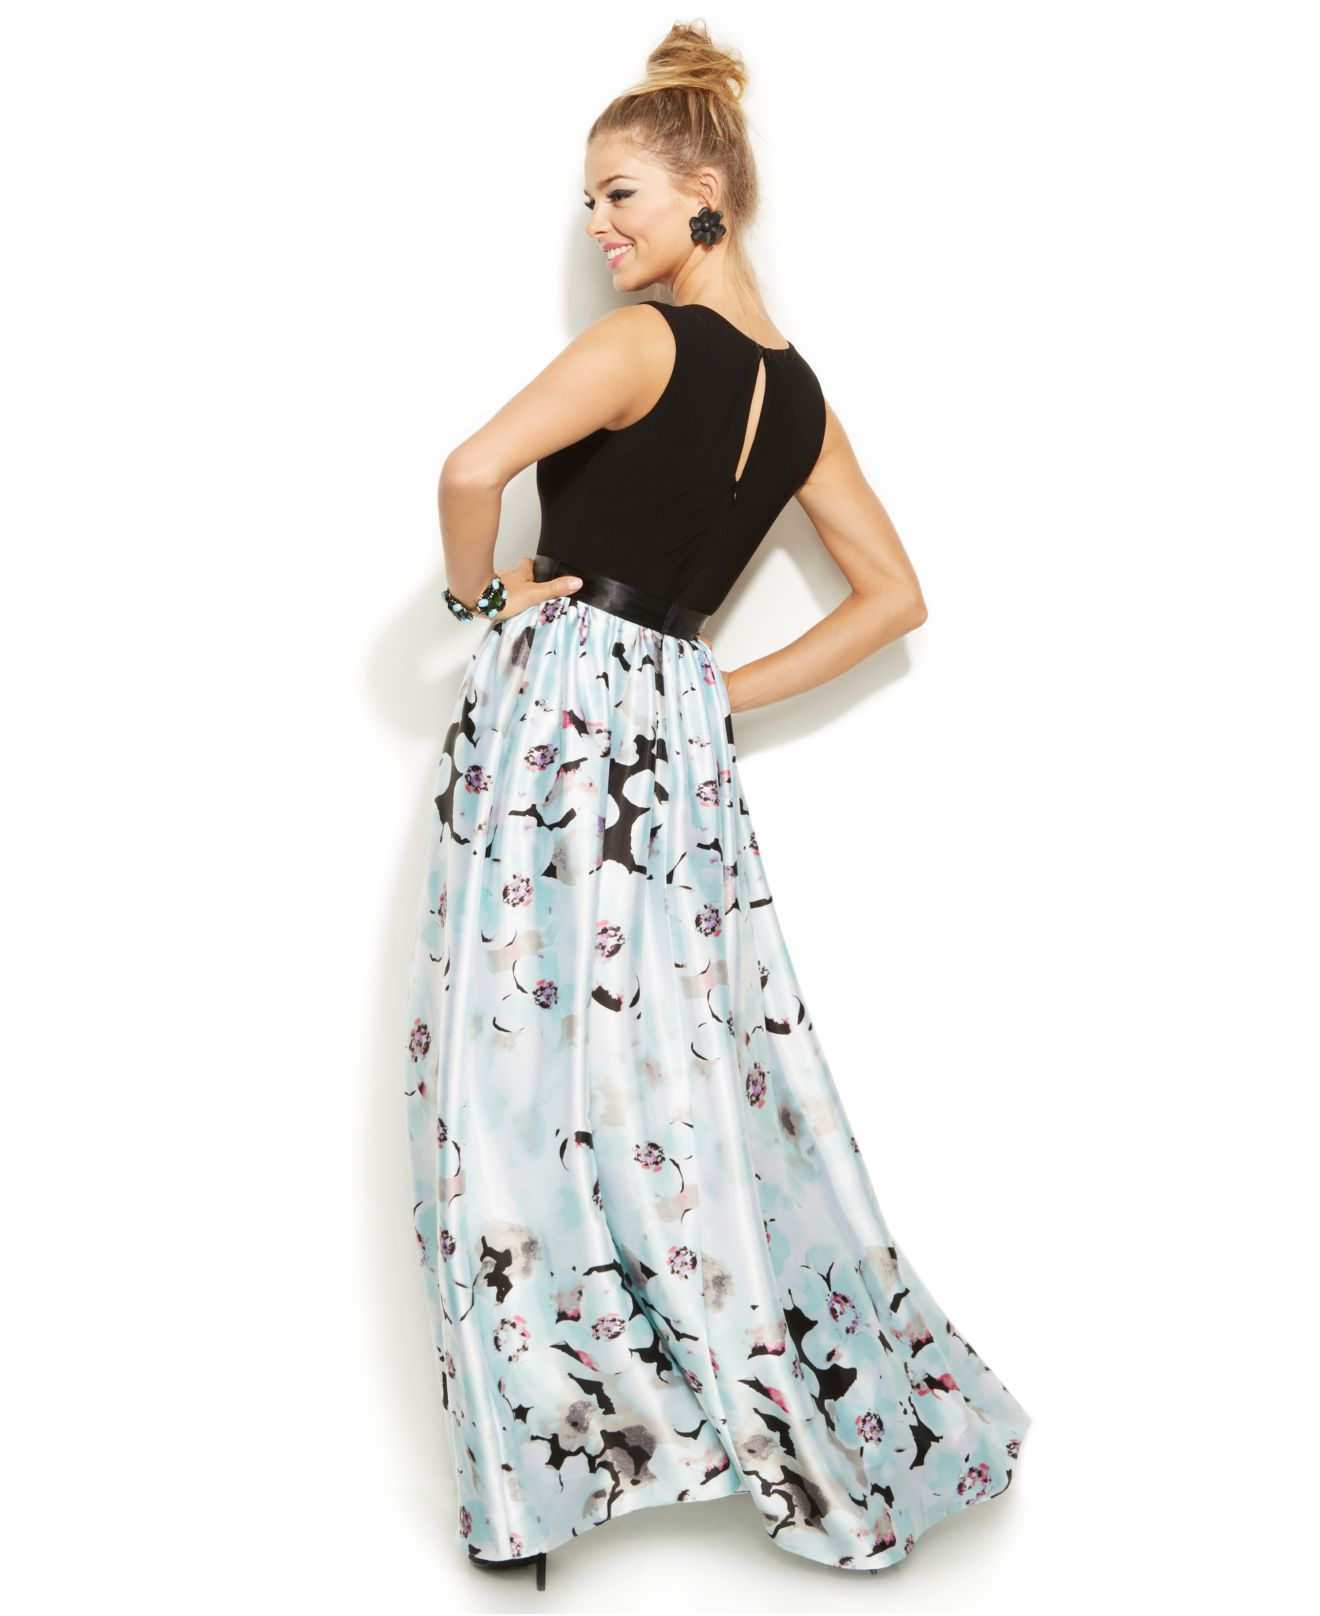 Lyst - Betsy & Adam Sleeveless Floral-print Gown in Blue